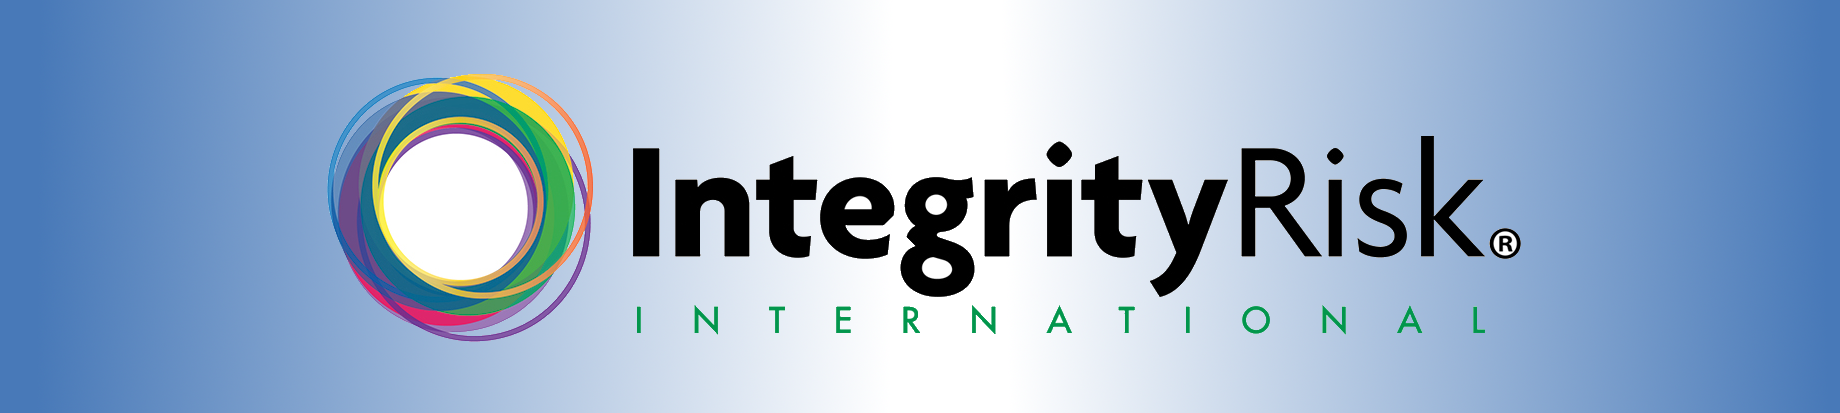 Integrity Risk International